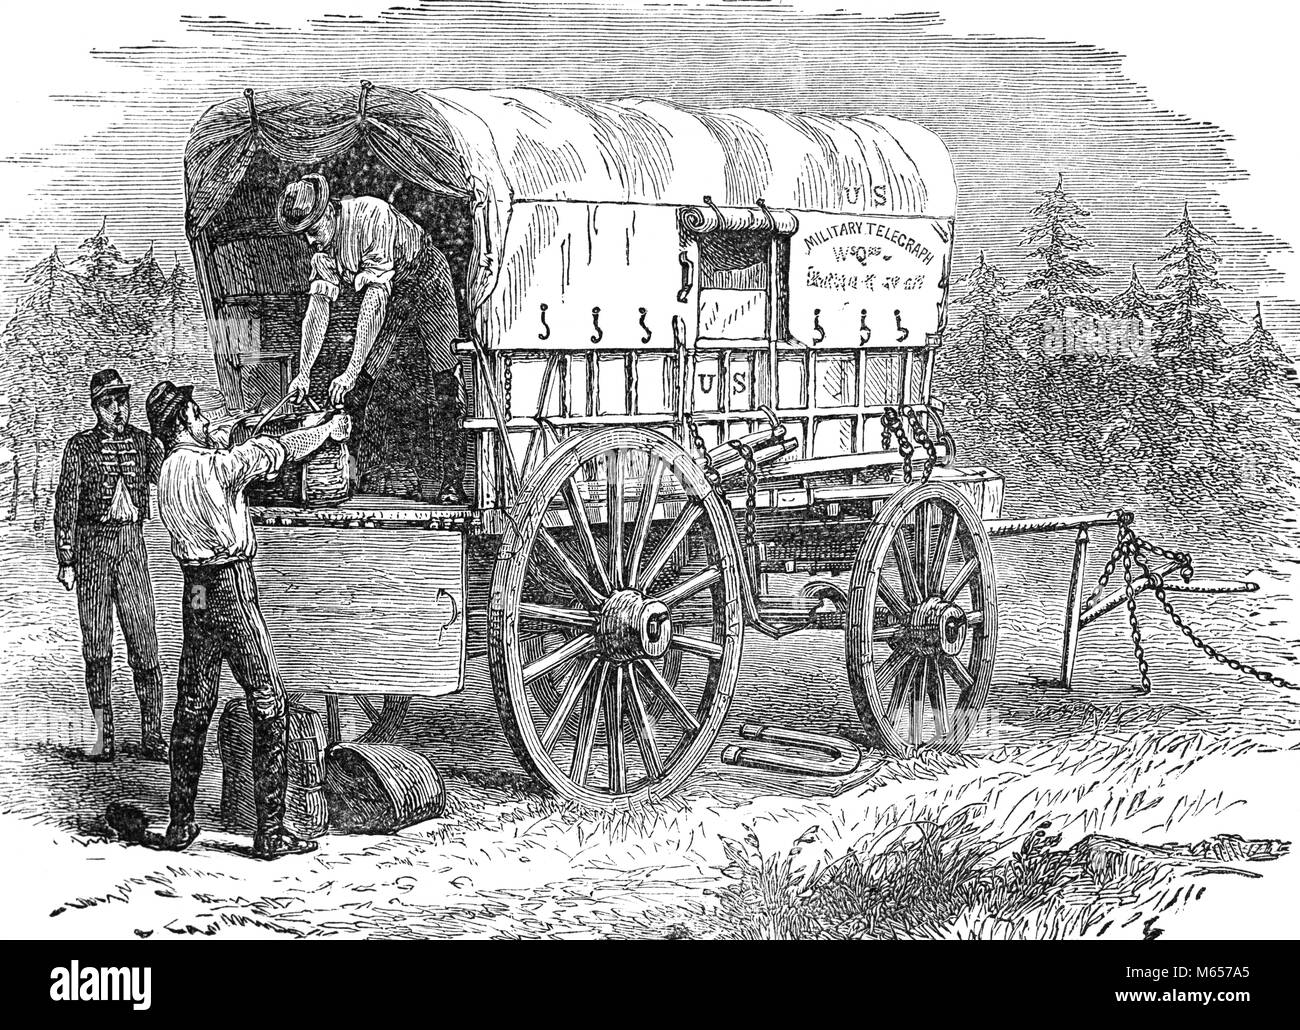 1860s UNITED STATES MILITARY TELEGRAPH WAGON AND SOLDIERS DURING AMERICAN CIVIL WAR - h9861 HAR001 HARS UNION AND Stock Photo